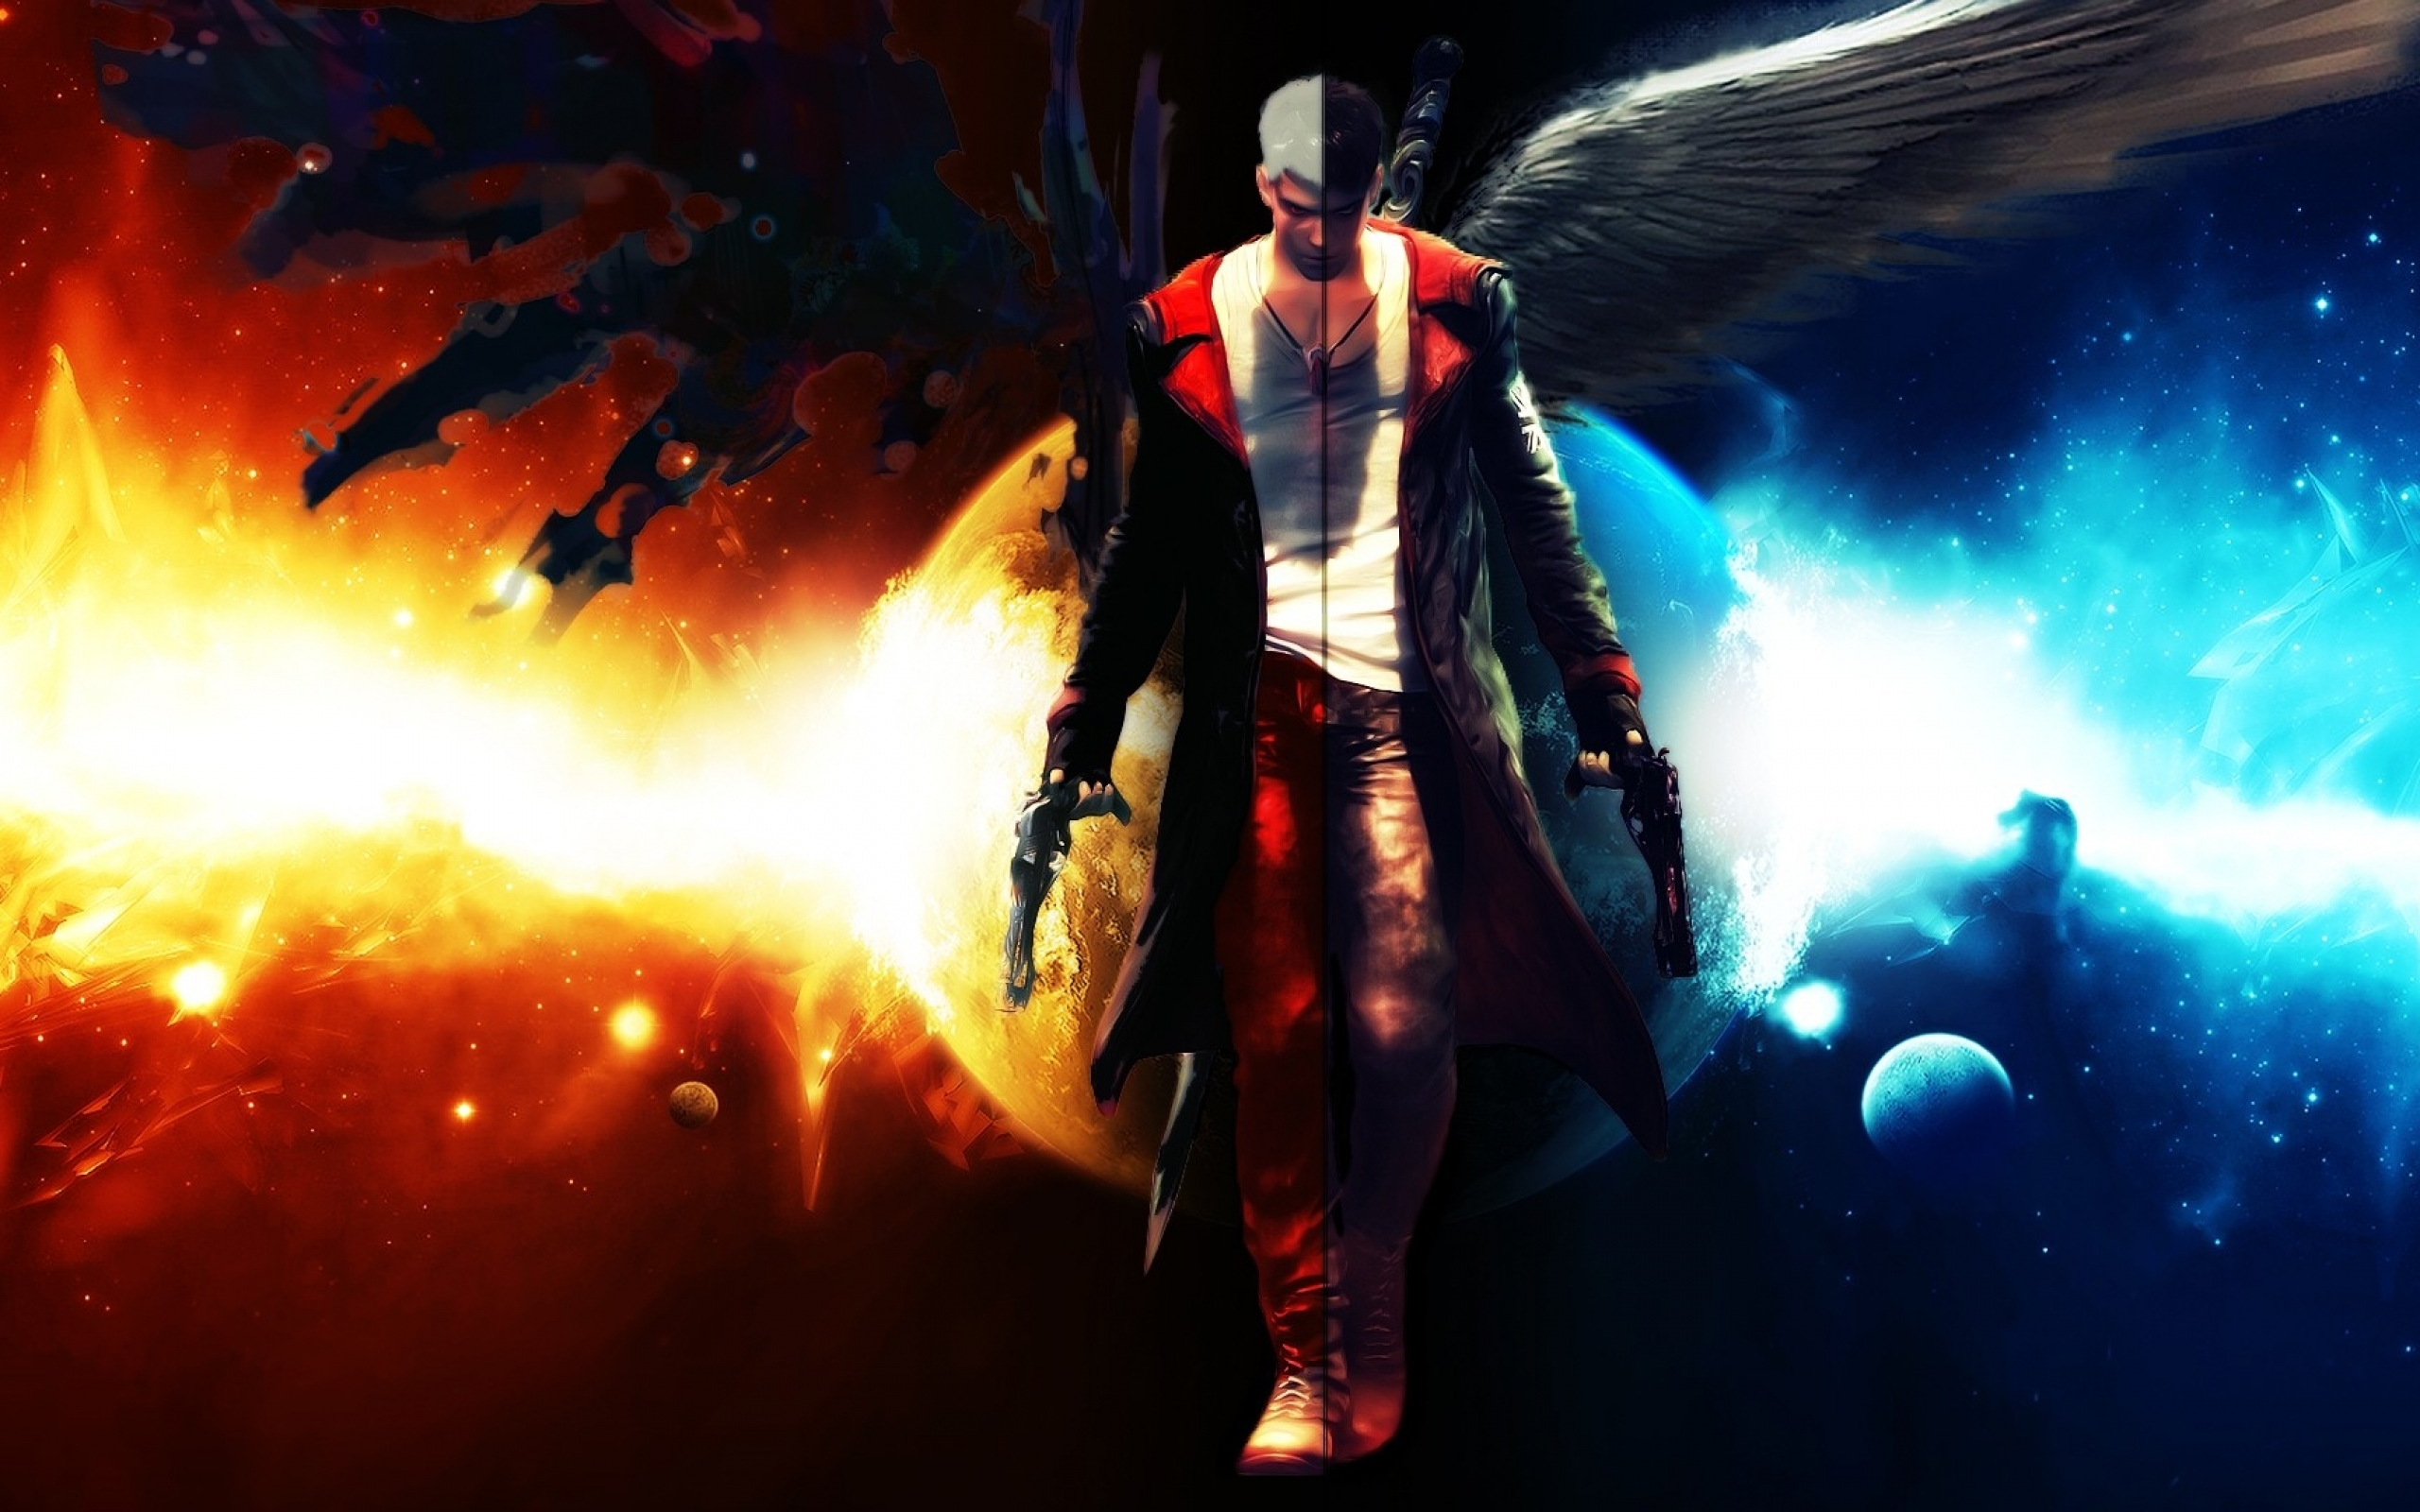 Download Wallpapers, Download 2560x1600 devil may cry 5 dmc devils